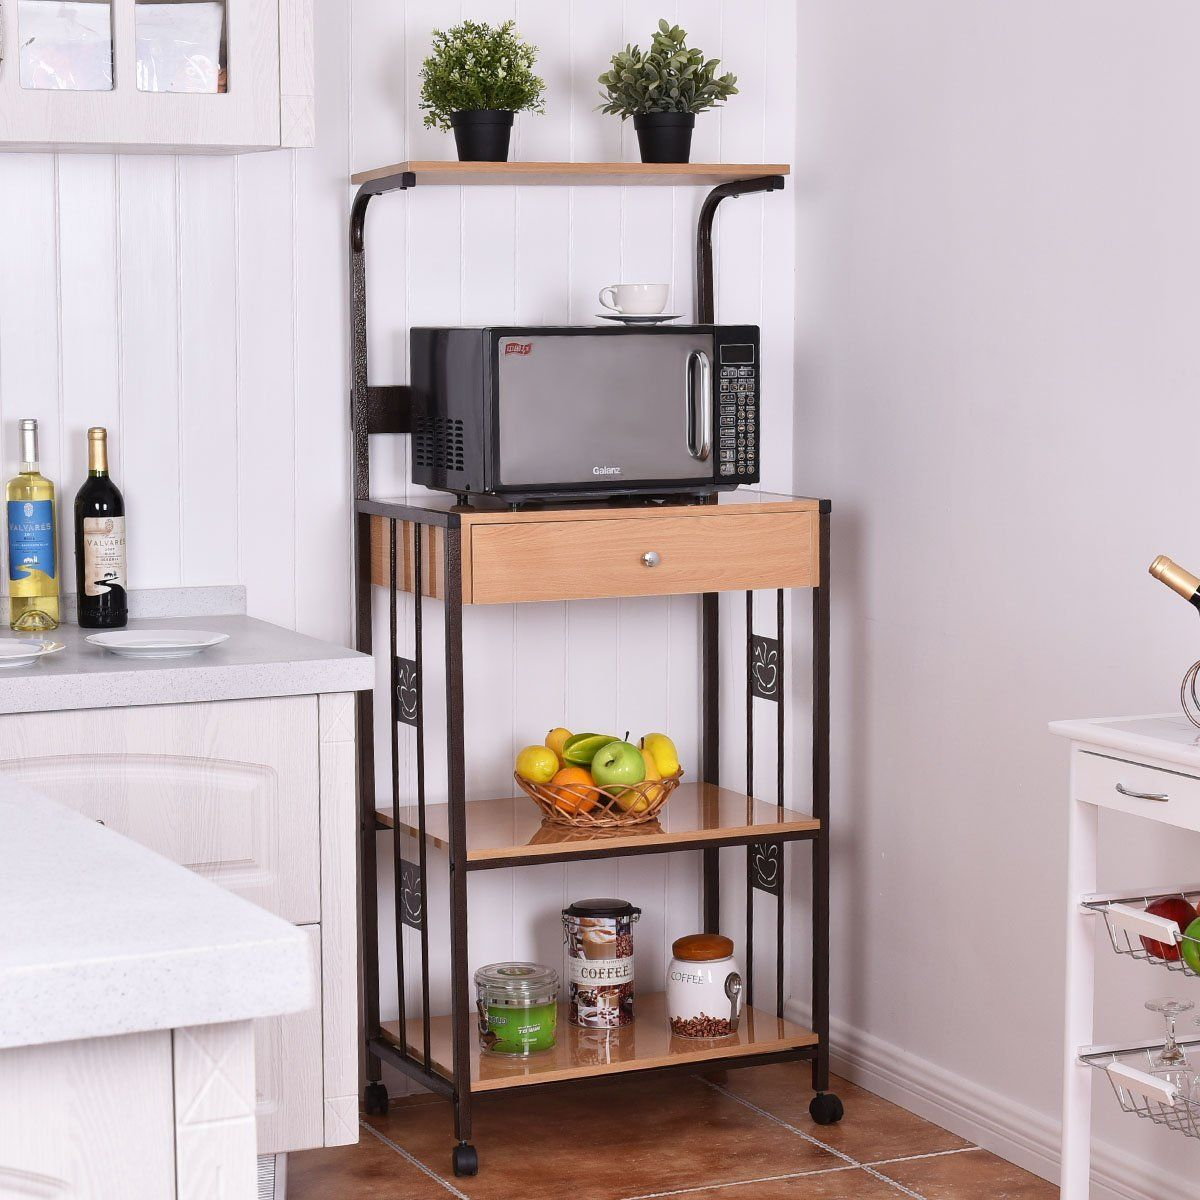 Giantex 59 Bakers Rack Microwave Stand Rolling Kitchen Storage Cart W Electric Outlet 25 2 X15 7 X 1